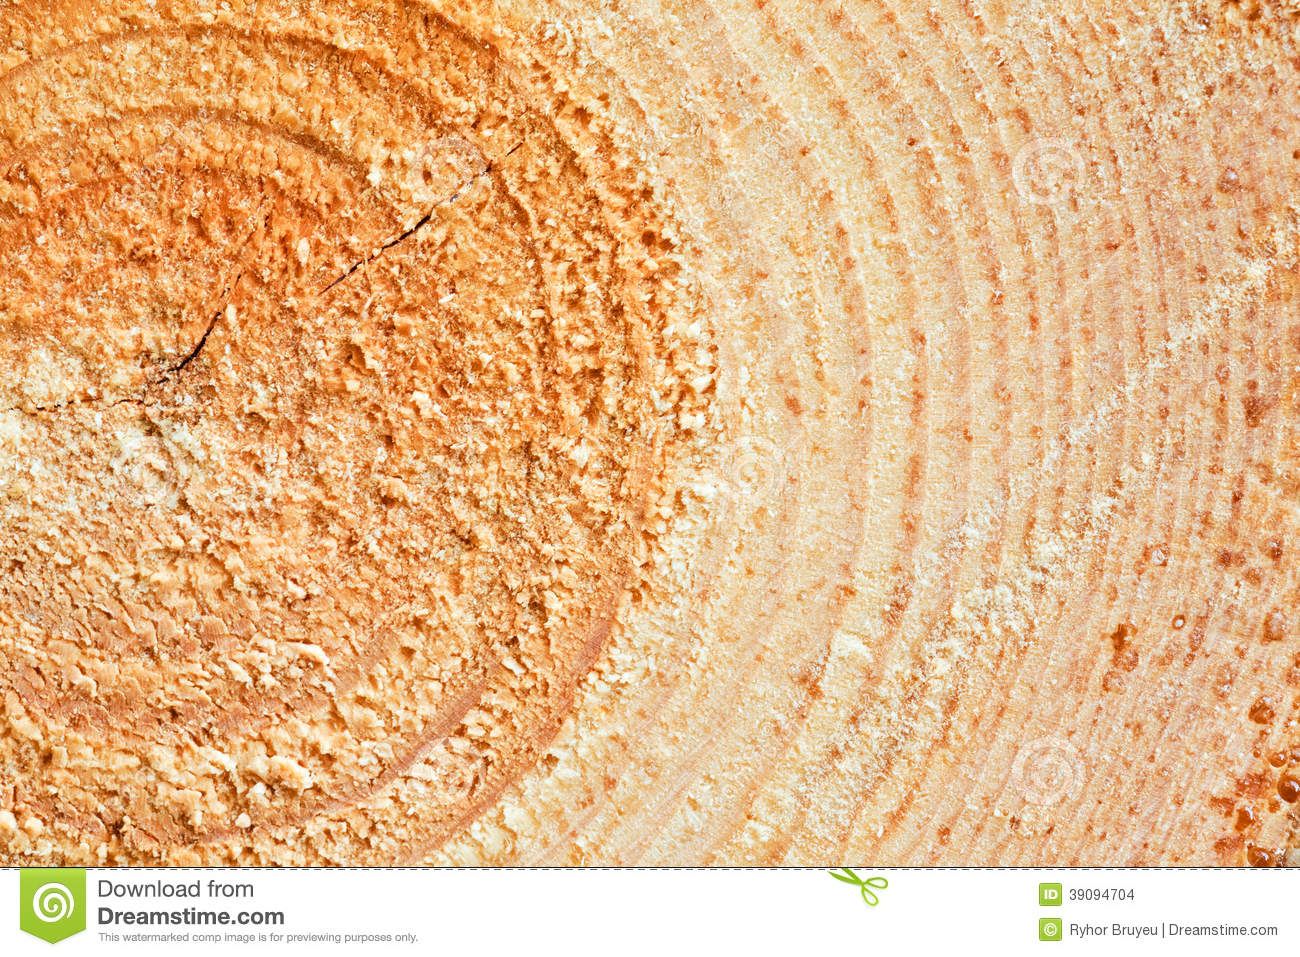 Annual Rings On Sawn Pine Tree Wood Stock Photo Image